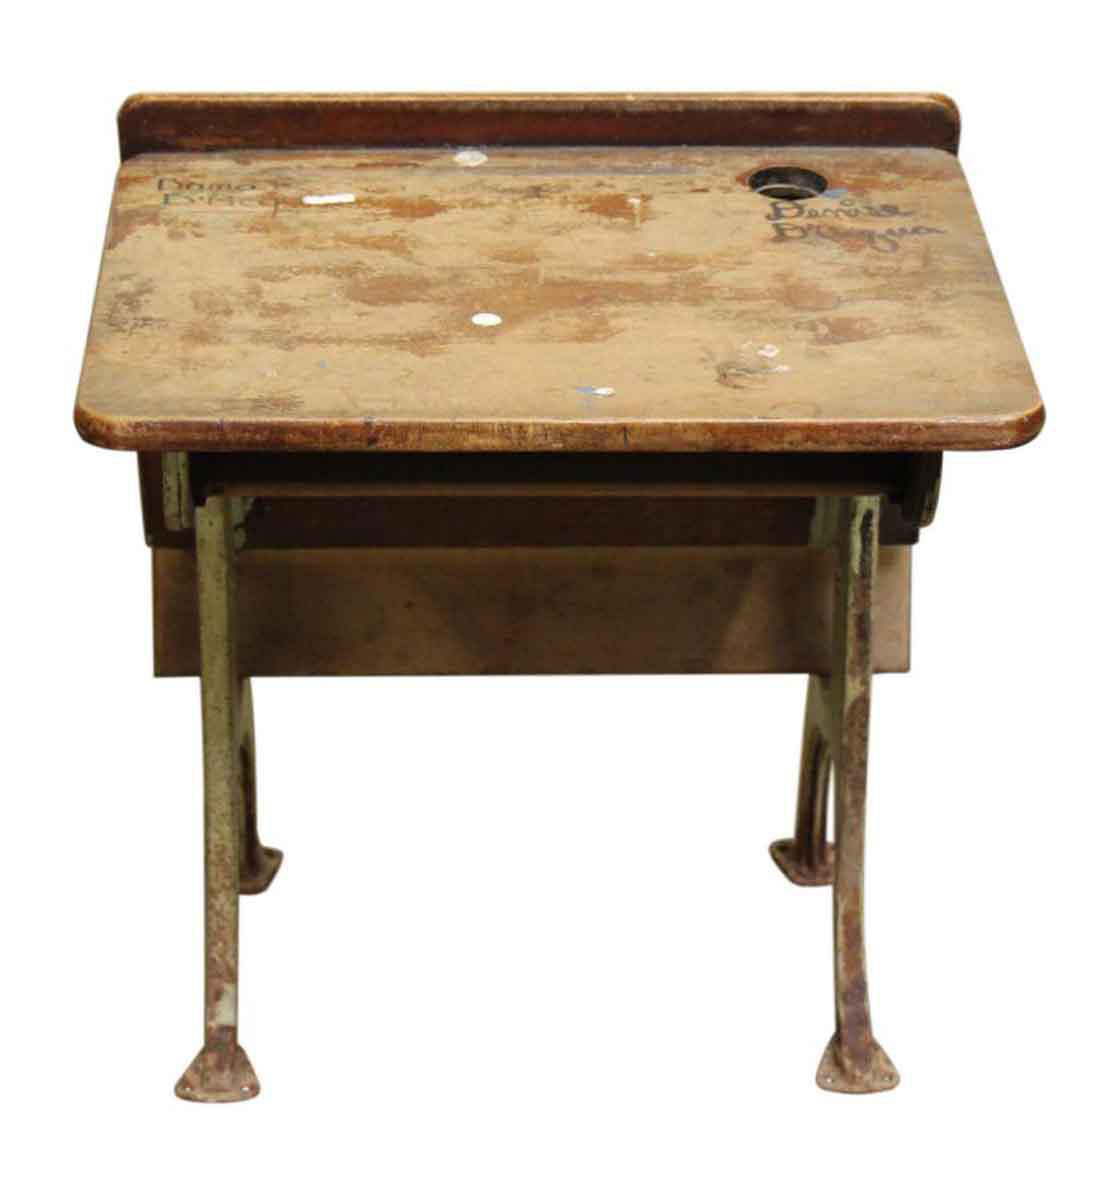 Wooden school desk and chair 19th Century School Vintage School Desk Chair For Sale Image Of 10 Chairish Vintage School Desk Chair Chairish